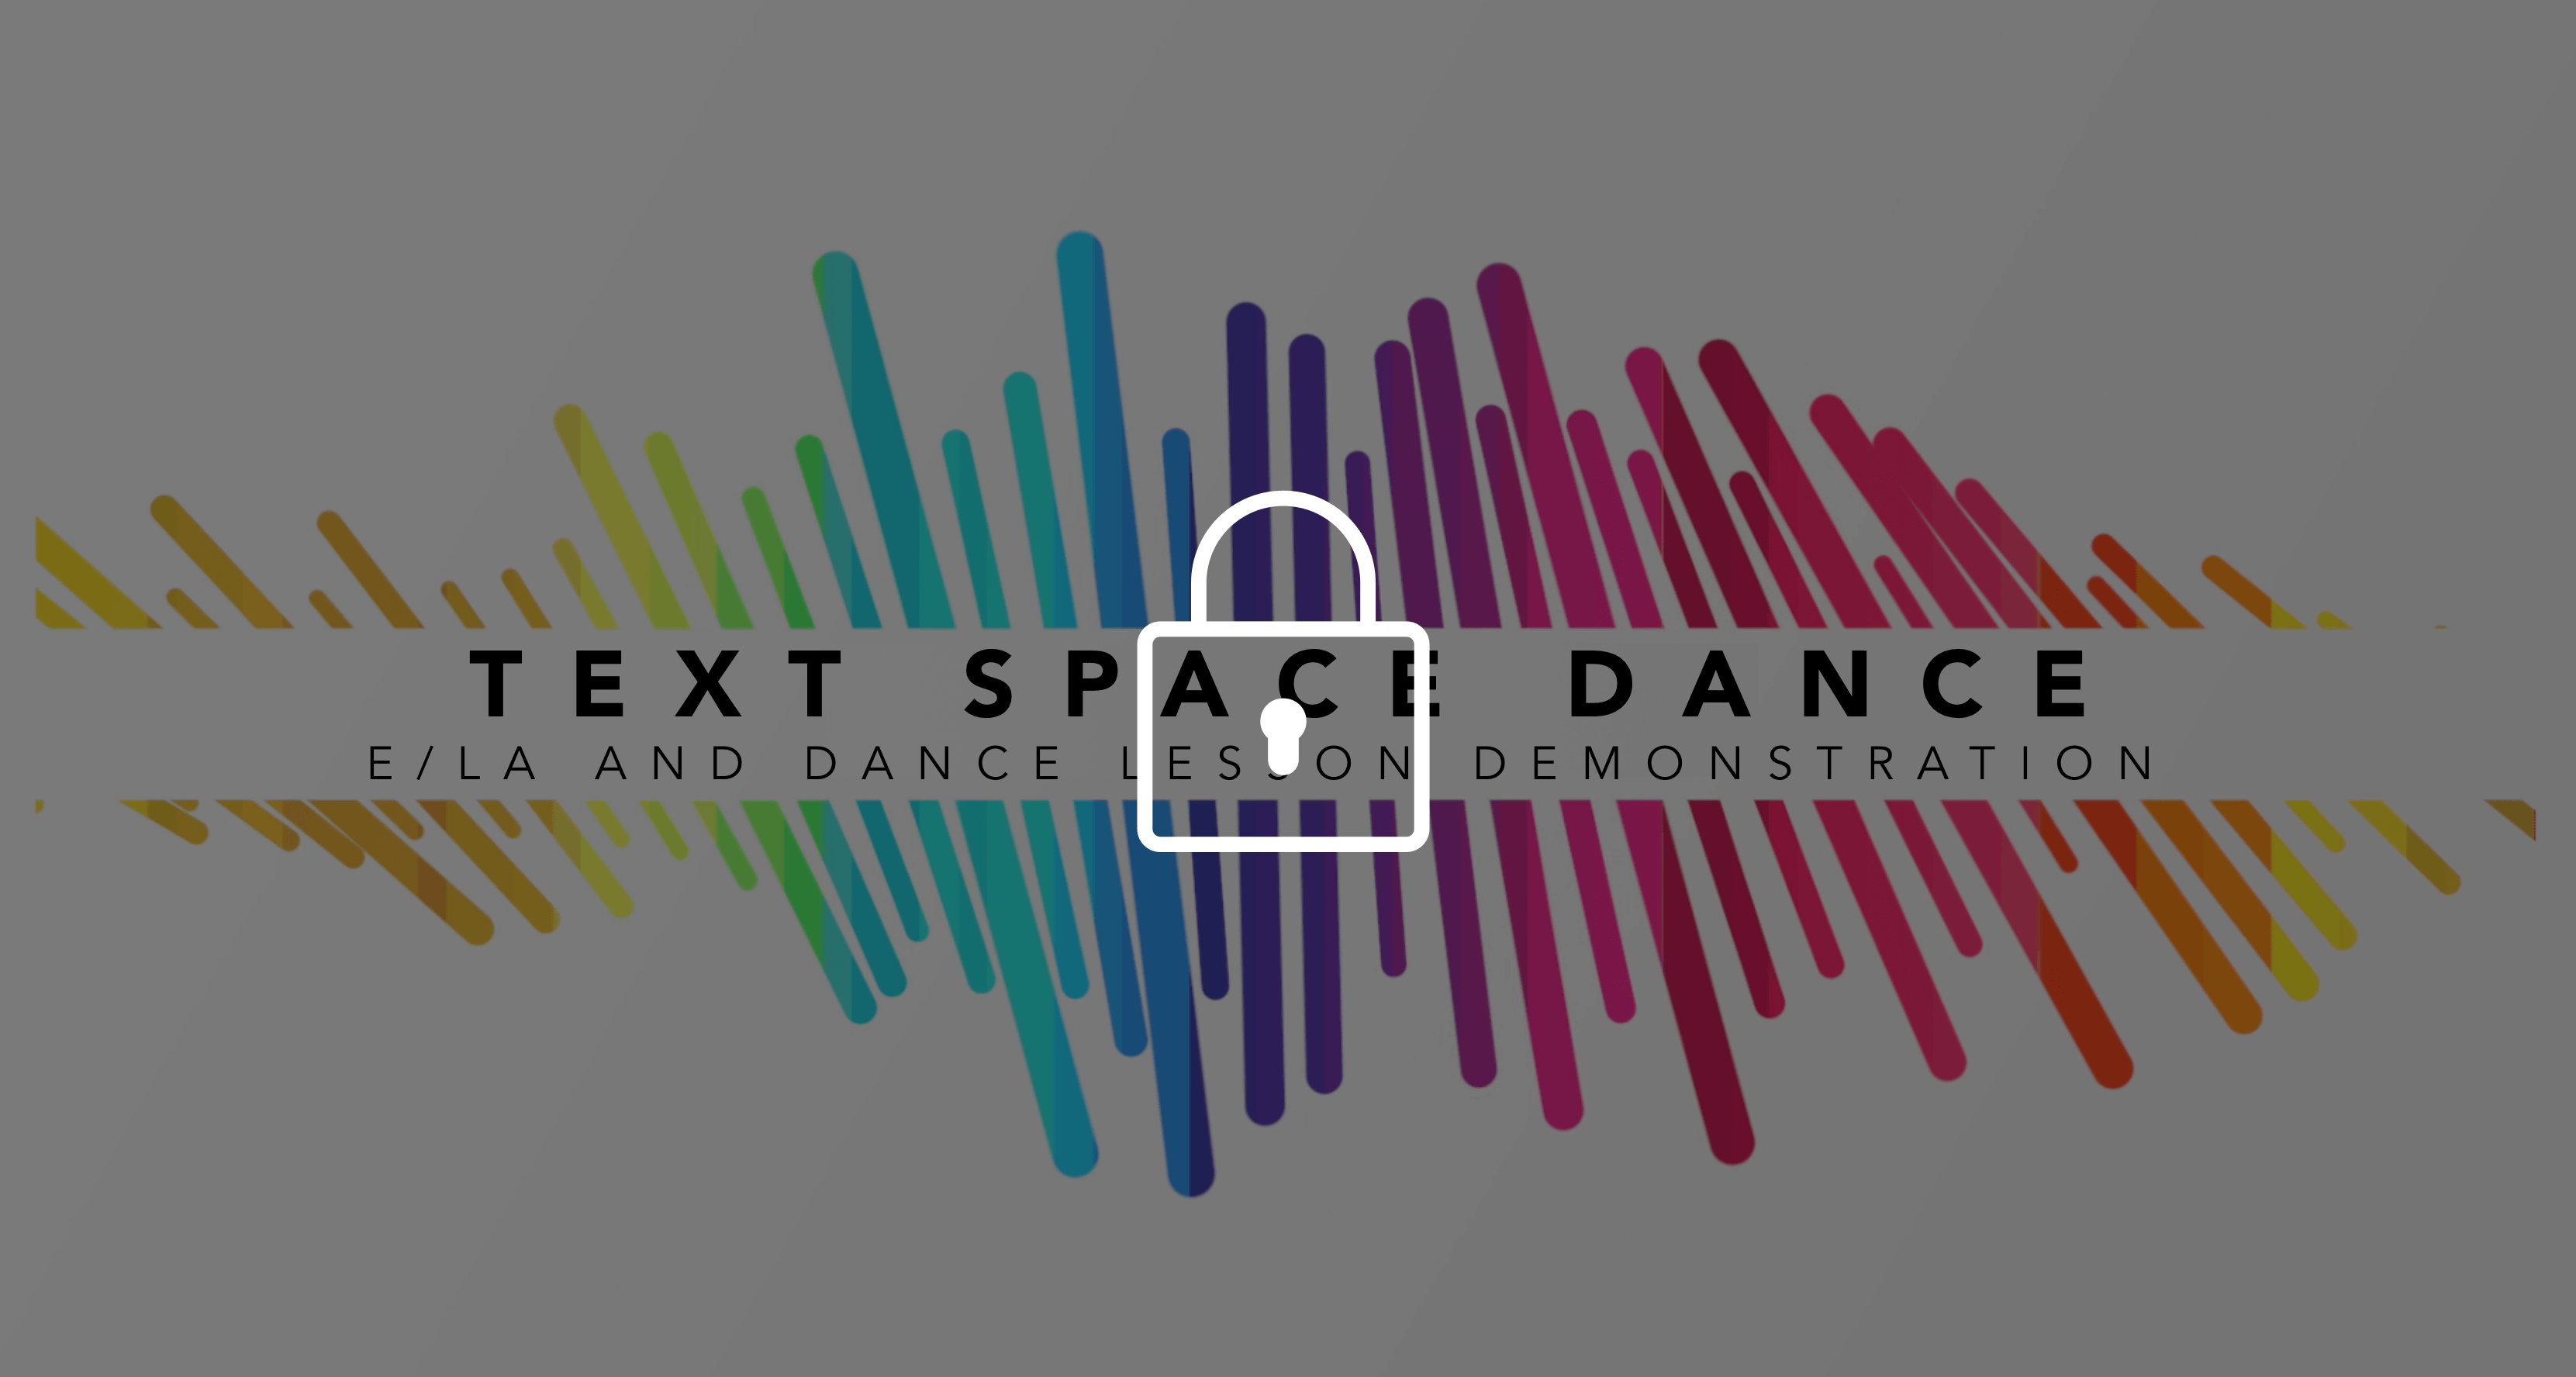 text space dance lesson video